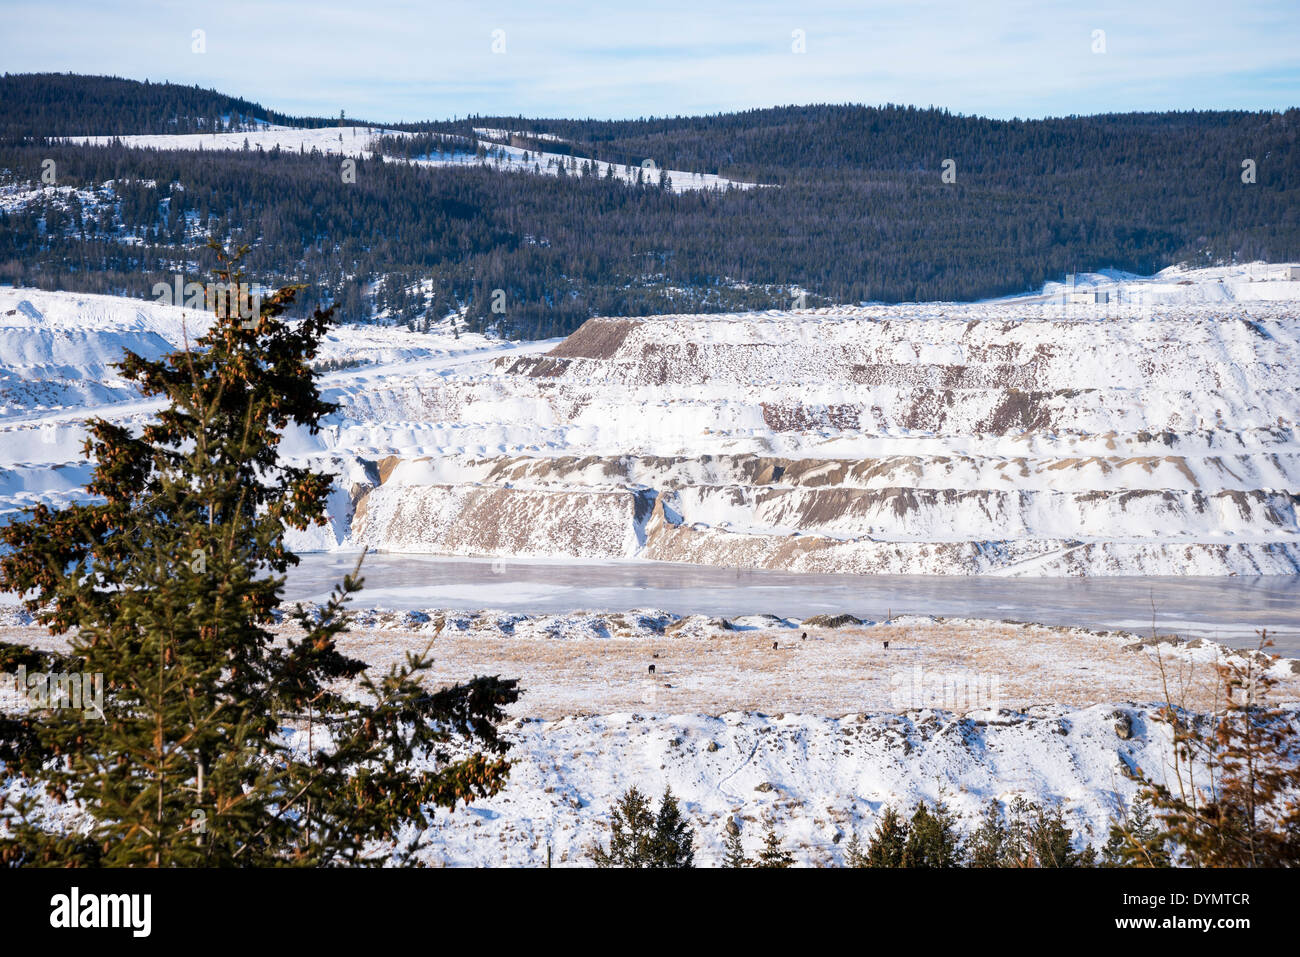 The Highland Valley Copper mine is the largest open pit copper mine